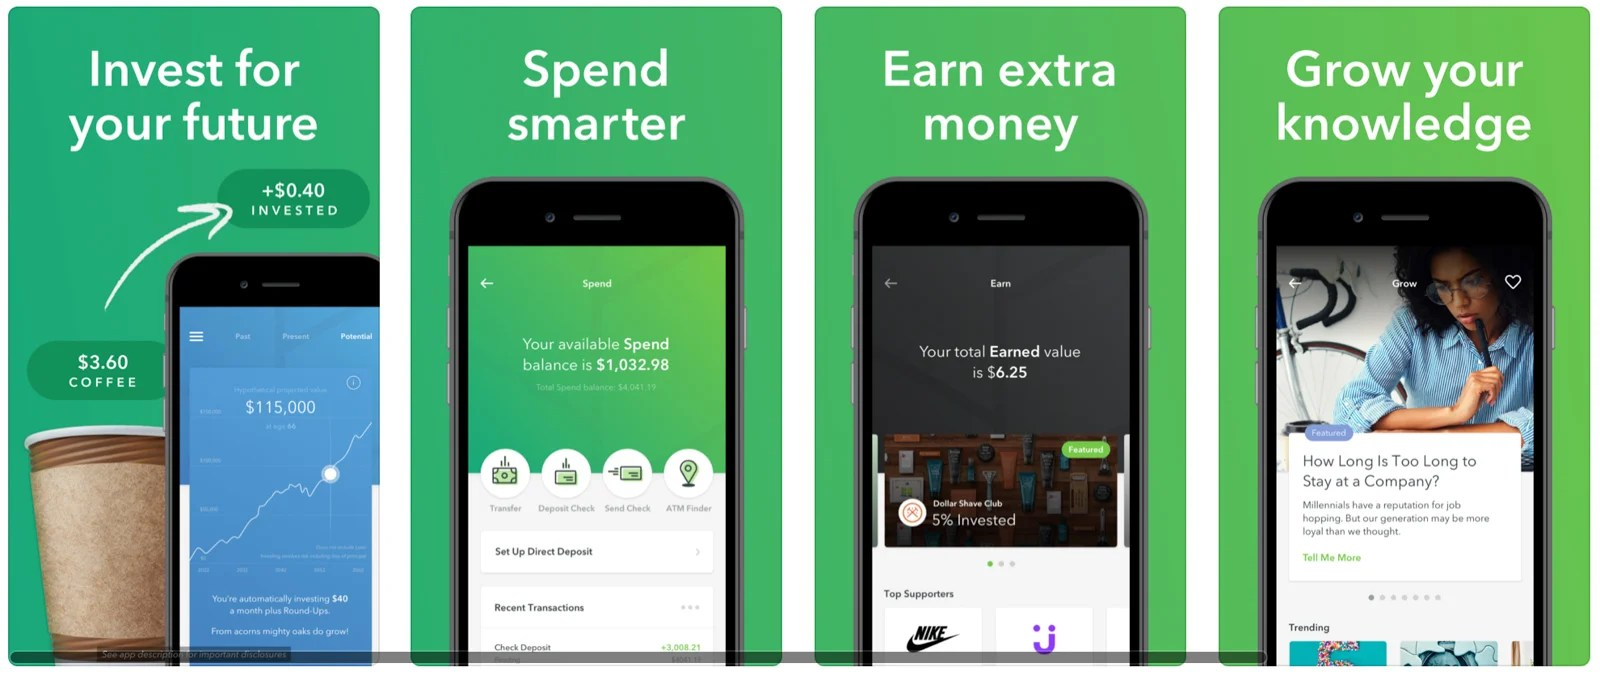 Best Investment Apps 2019 Best Investment Apps for 2019